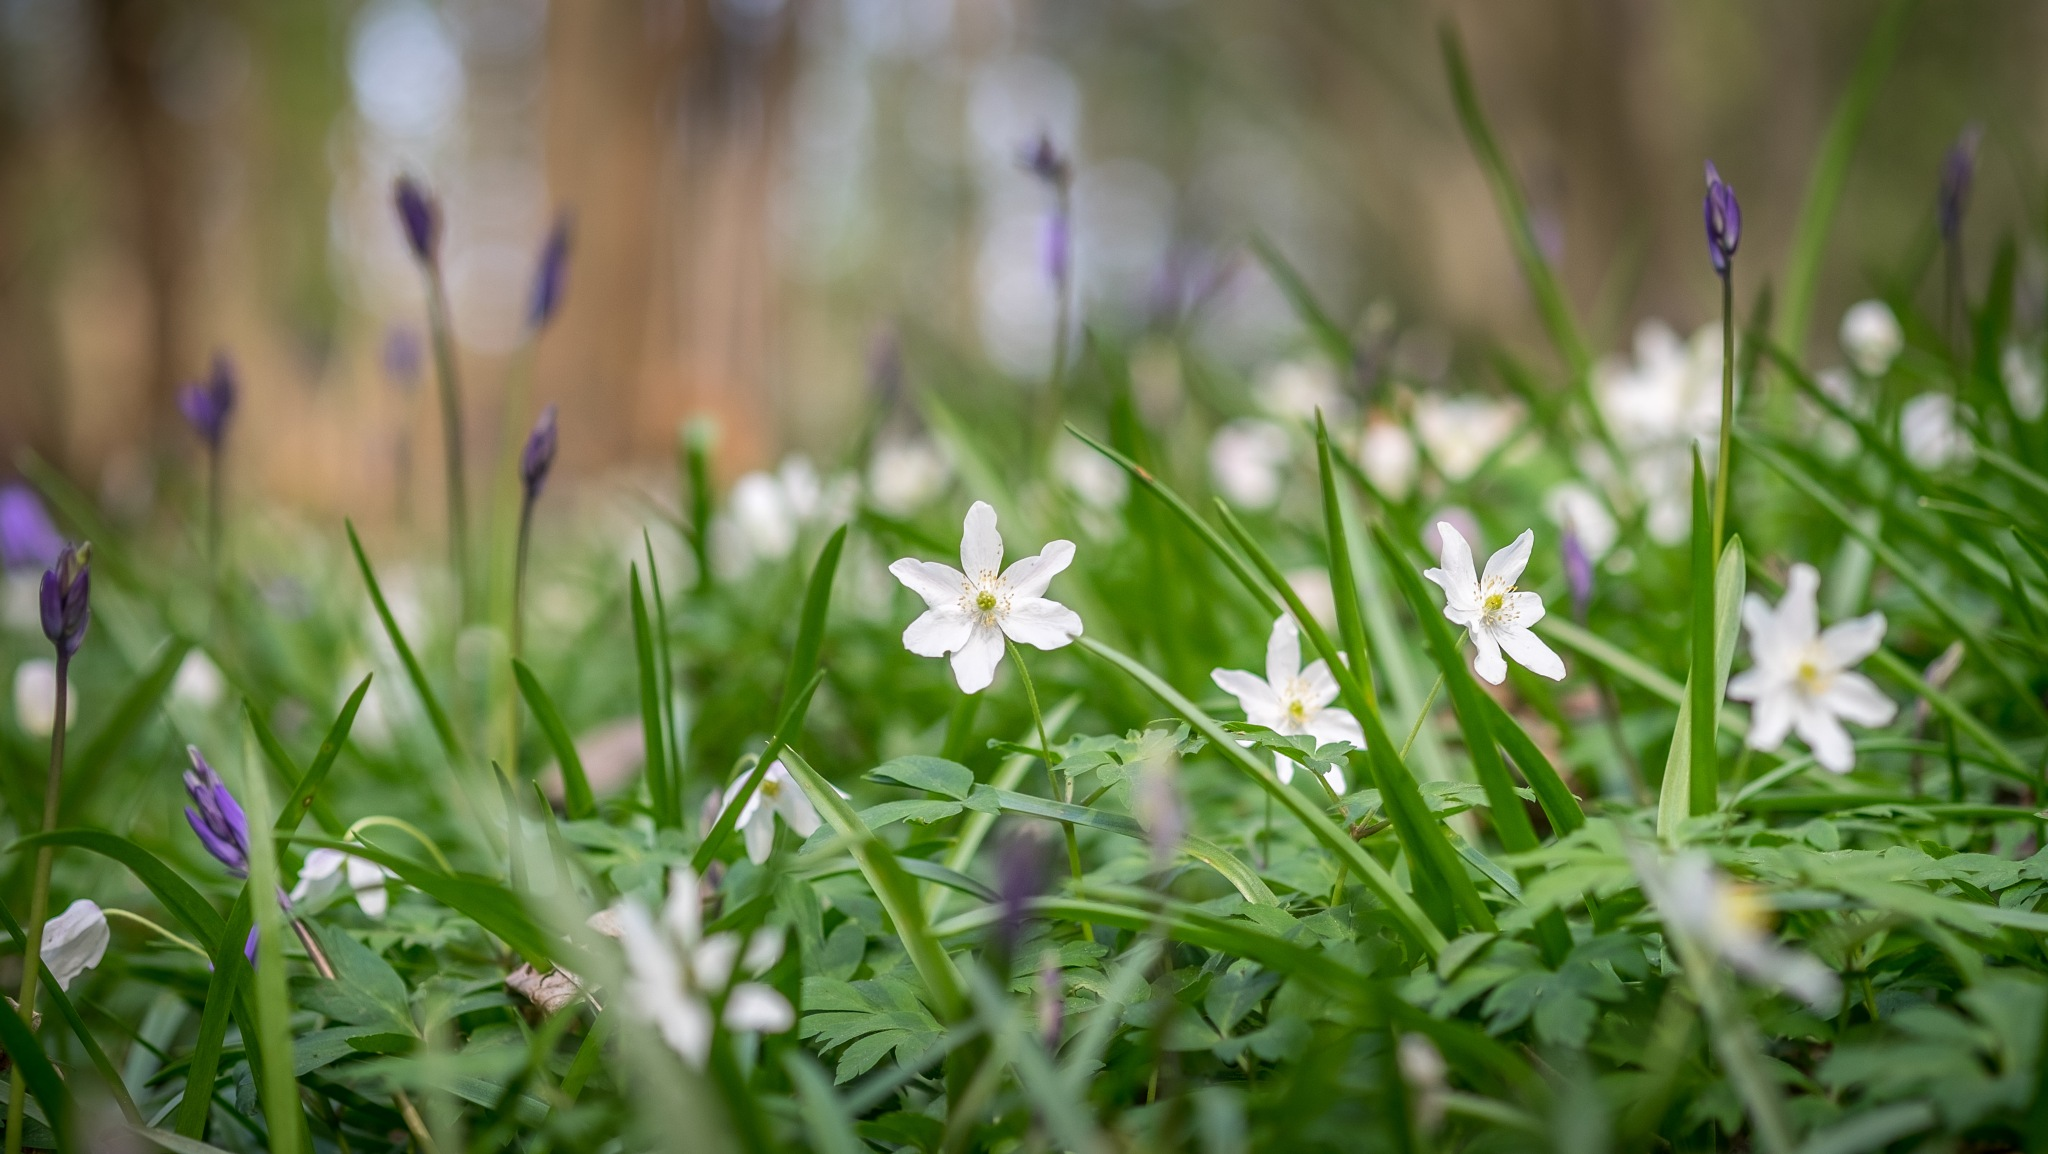 wood anenomes in abbotts wood by marchare